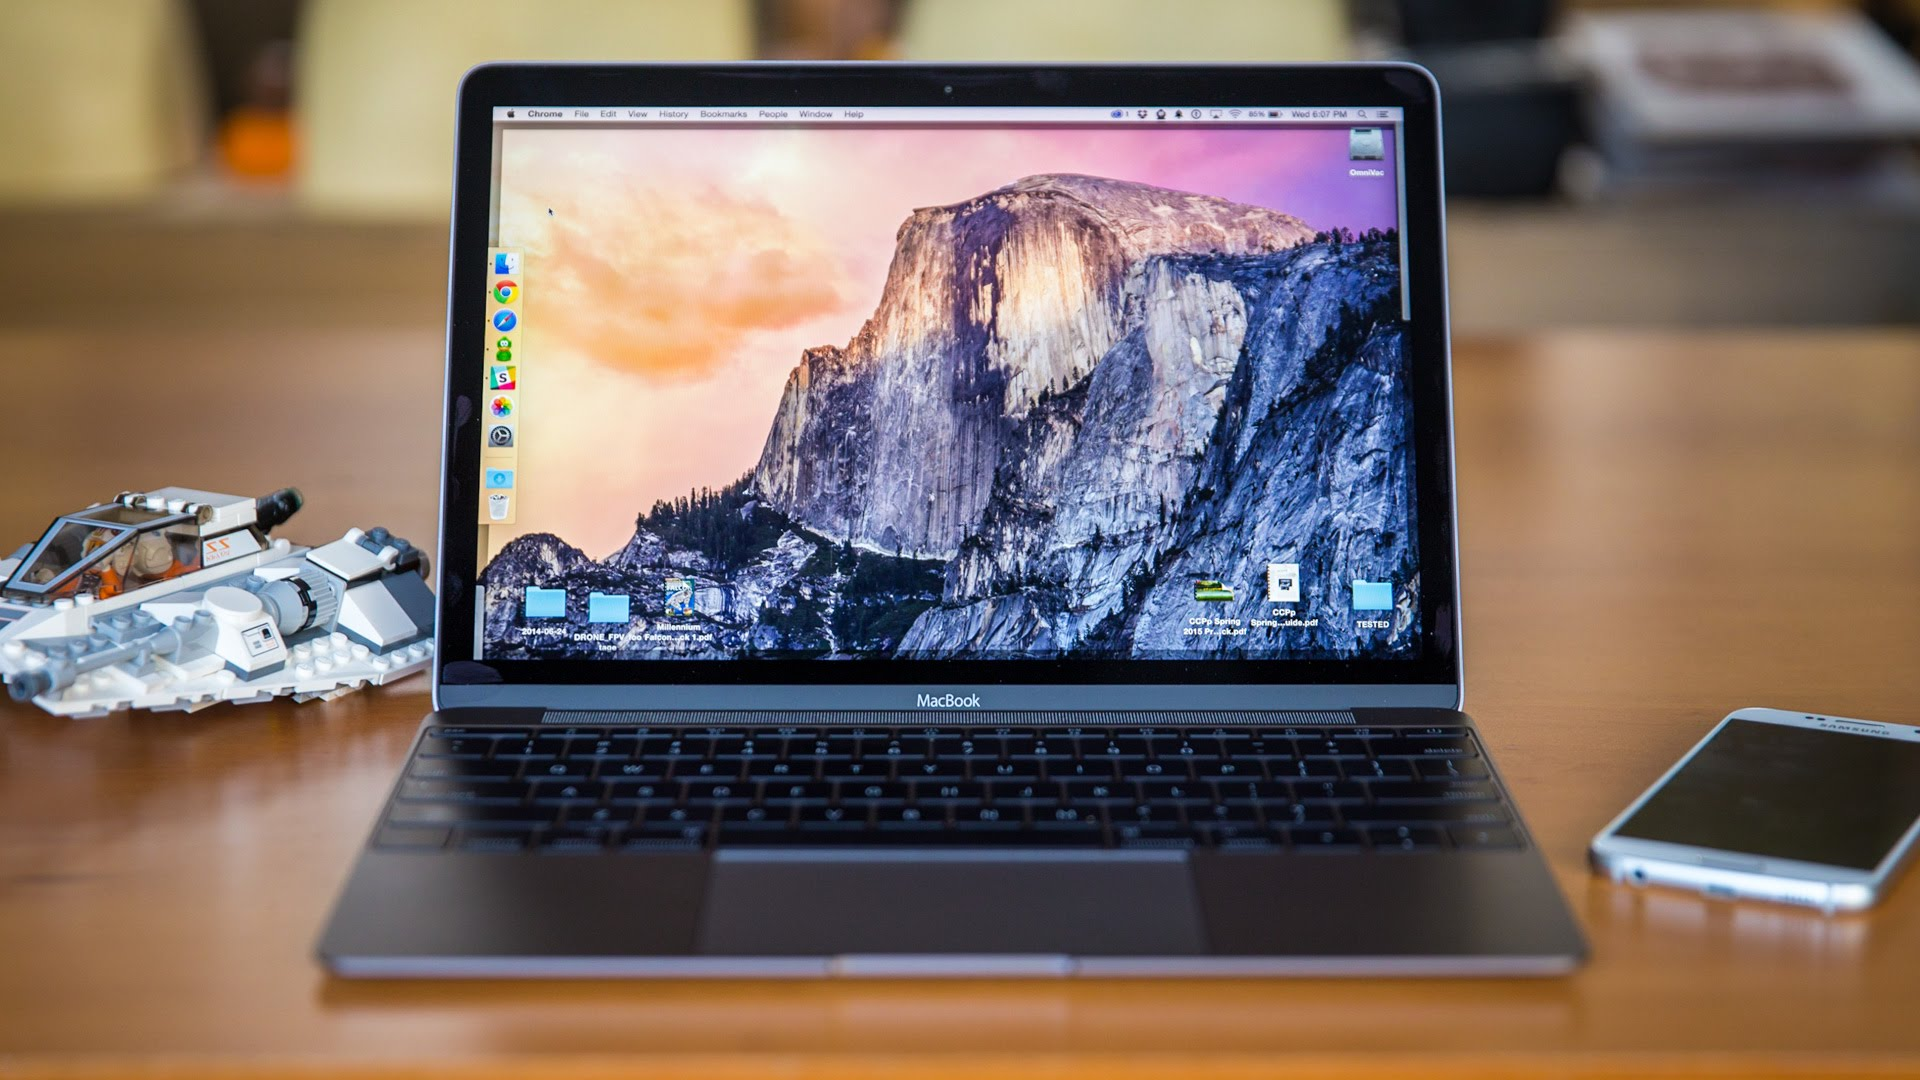 A couple of tricks for Mac, which you might not know